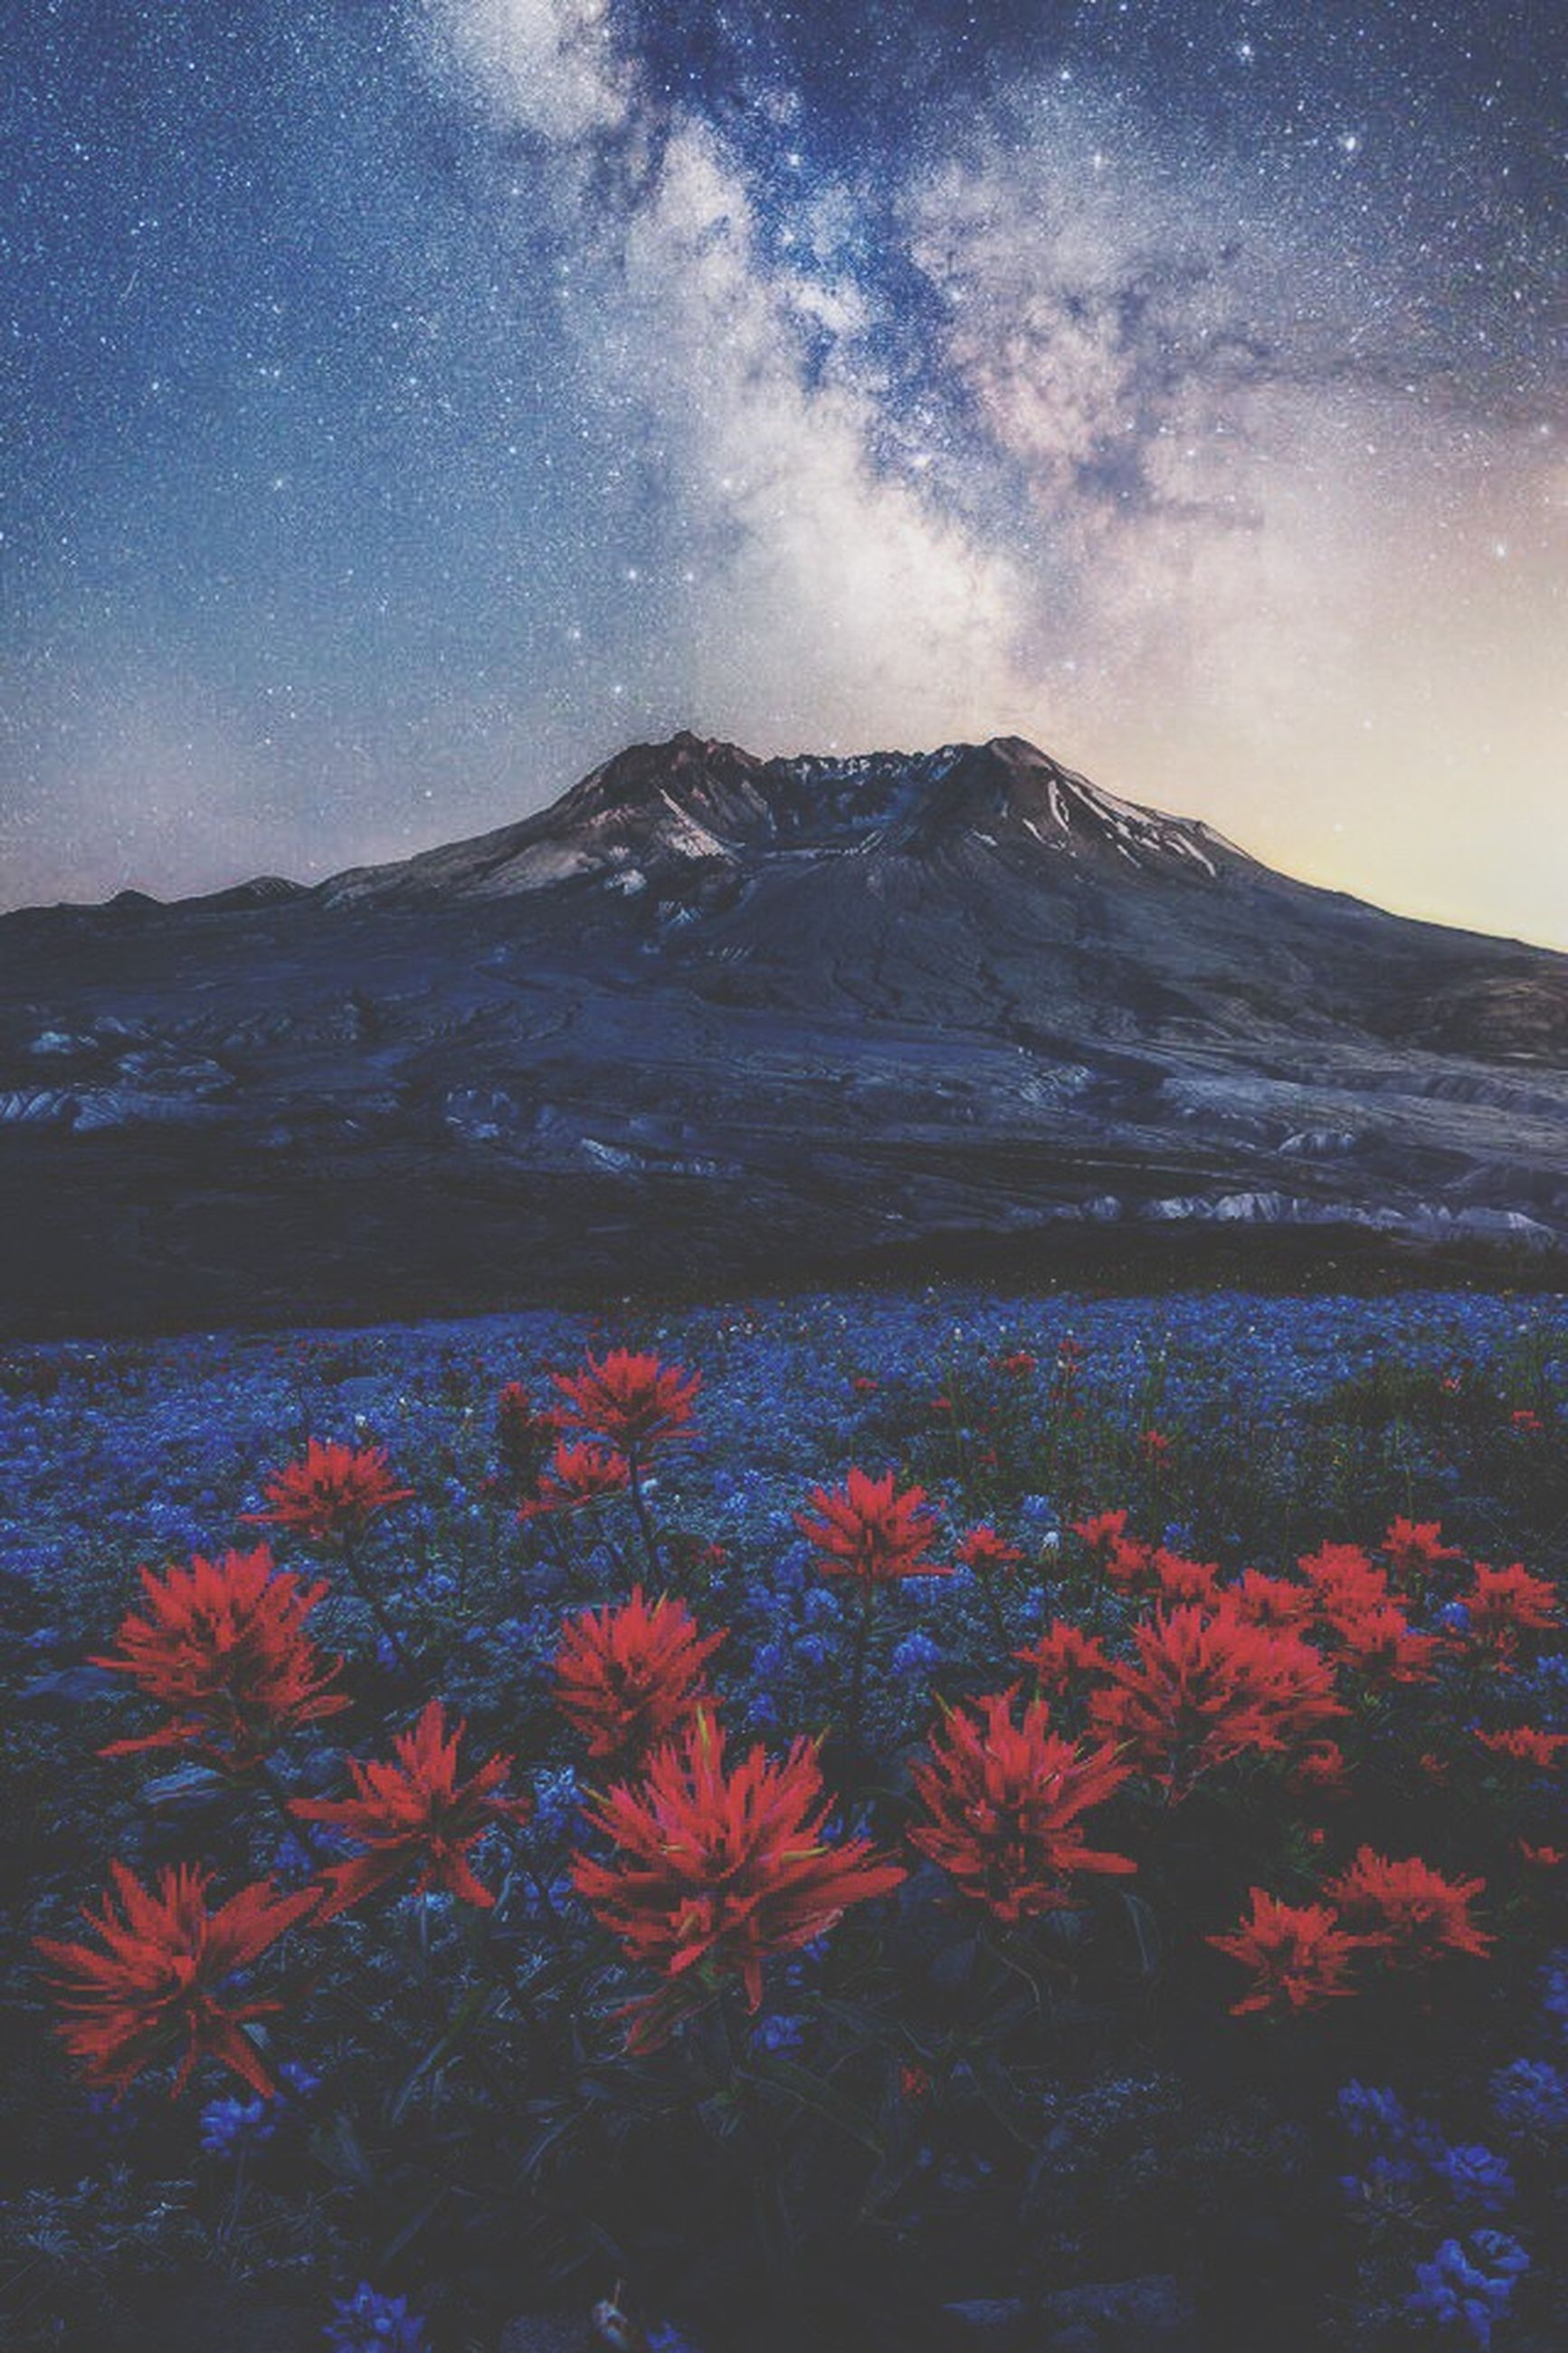 beauty in nature, nature, flower, mountain, scenics, tranquil scene, outdoors, sky, tranquility, plant, no people, landscape, day, star - space, water, freshness, flower head, galaxy